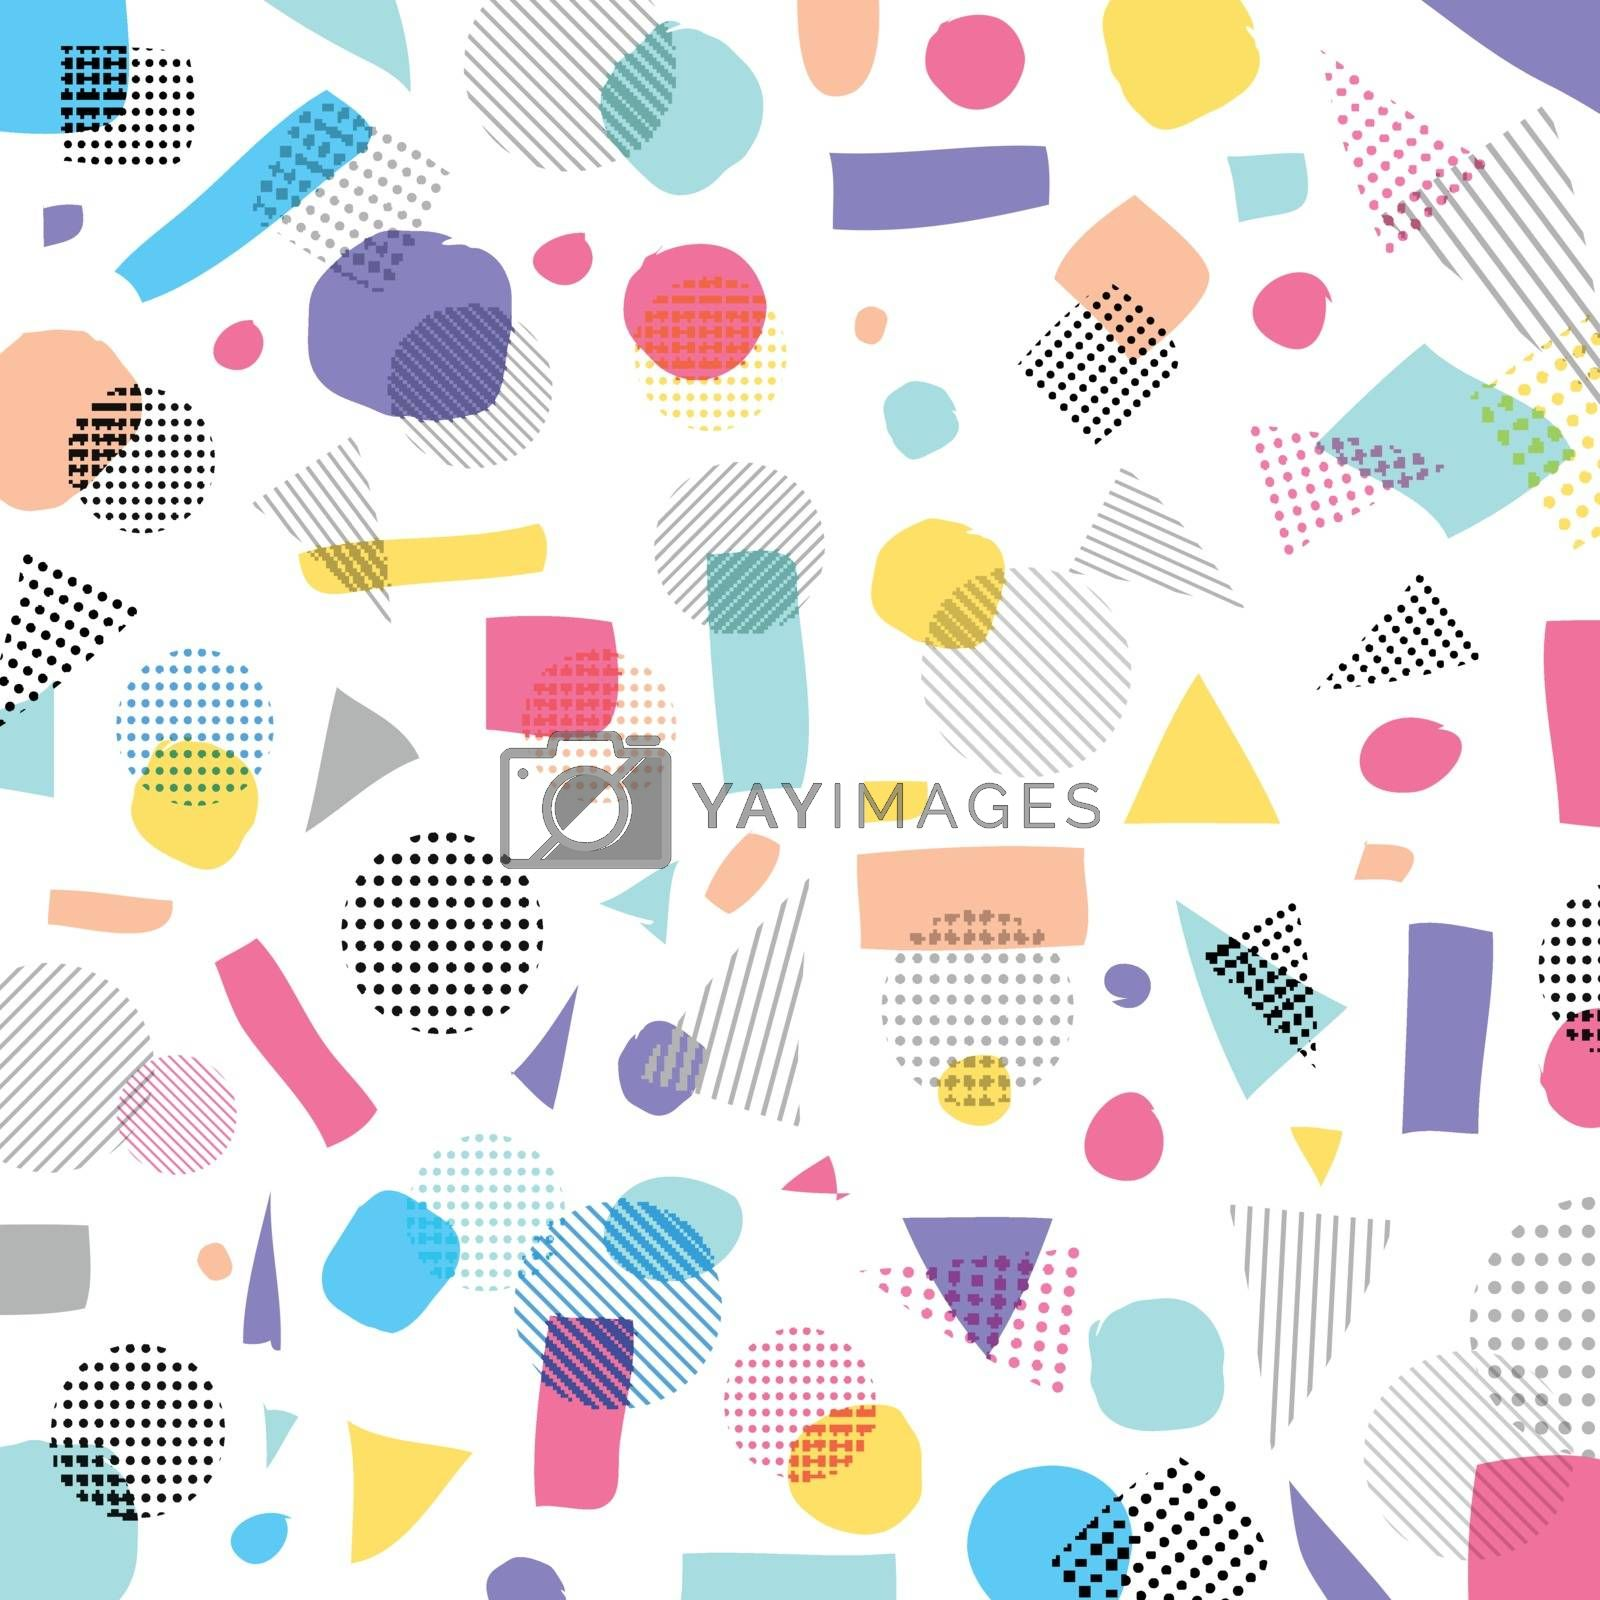 Abstract geometric modern pastels color, black dots pattern with lines diagonally on white background. Vector illustration